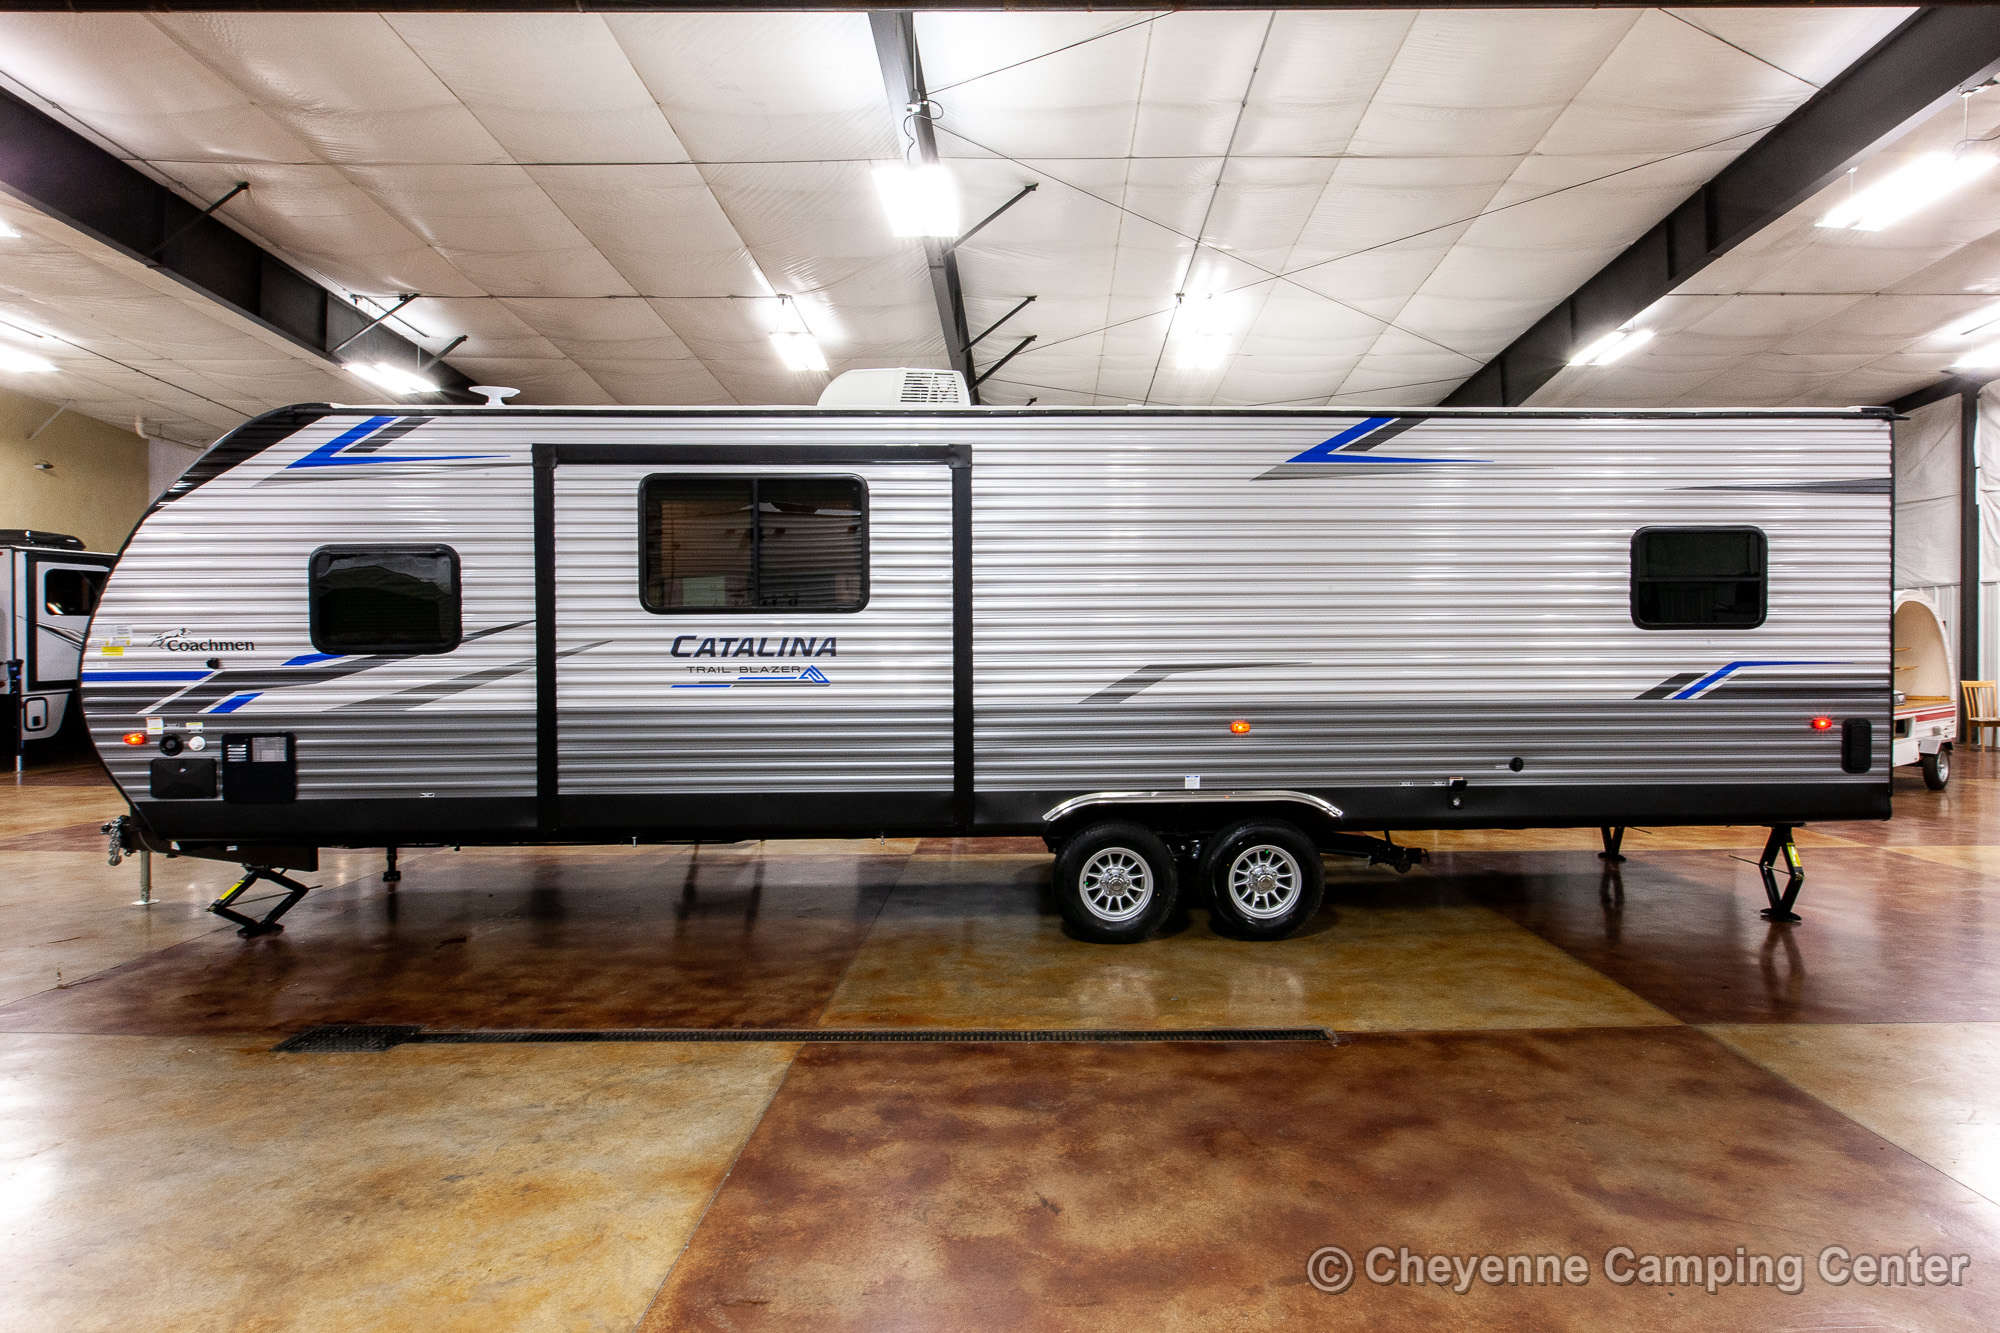 2021 Coachmen Catalina Trail Blazer 29THS Toy Hauler Travel Trailer Exterior Image